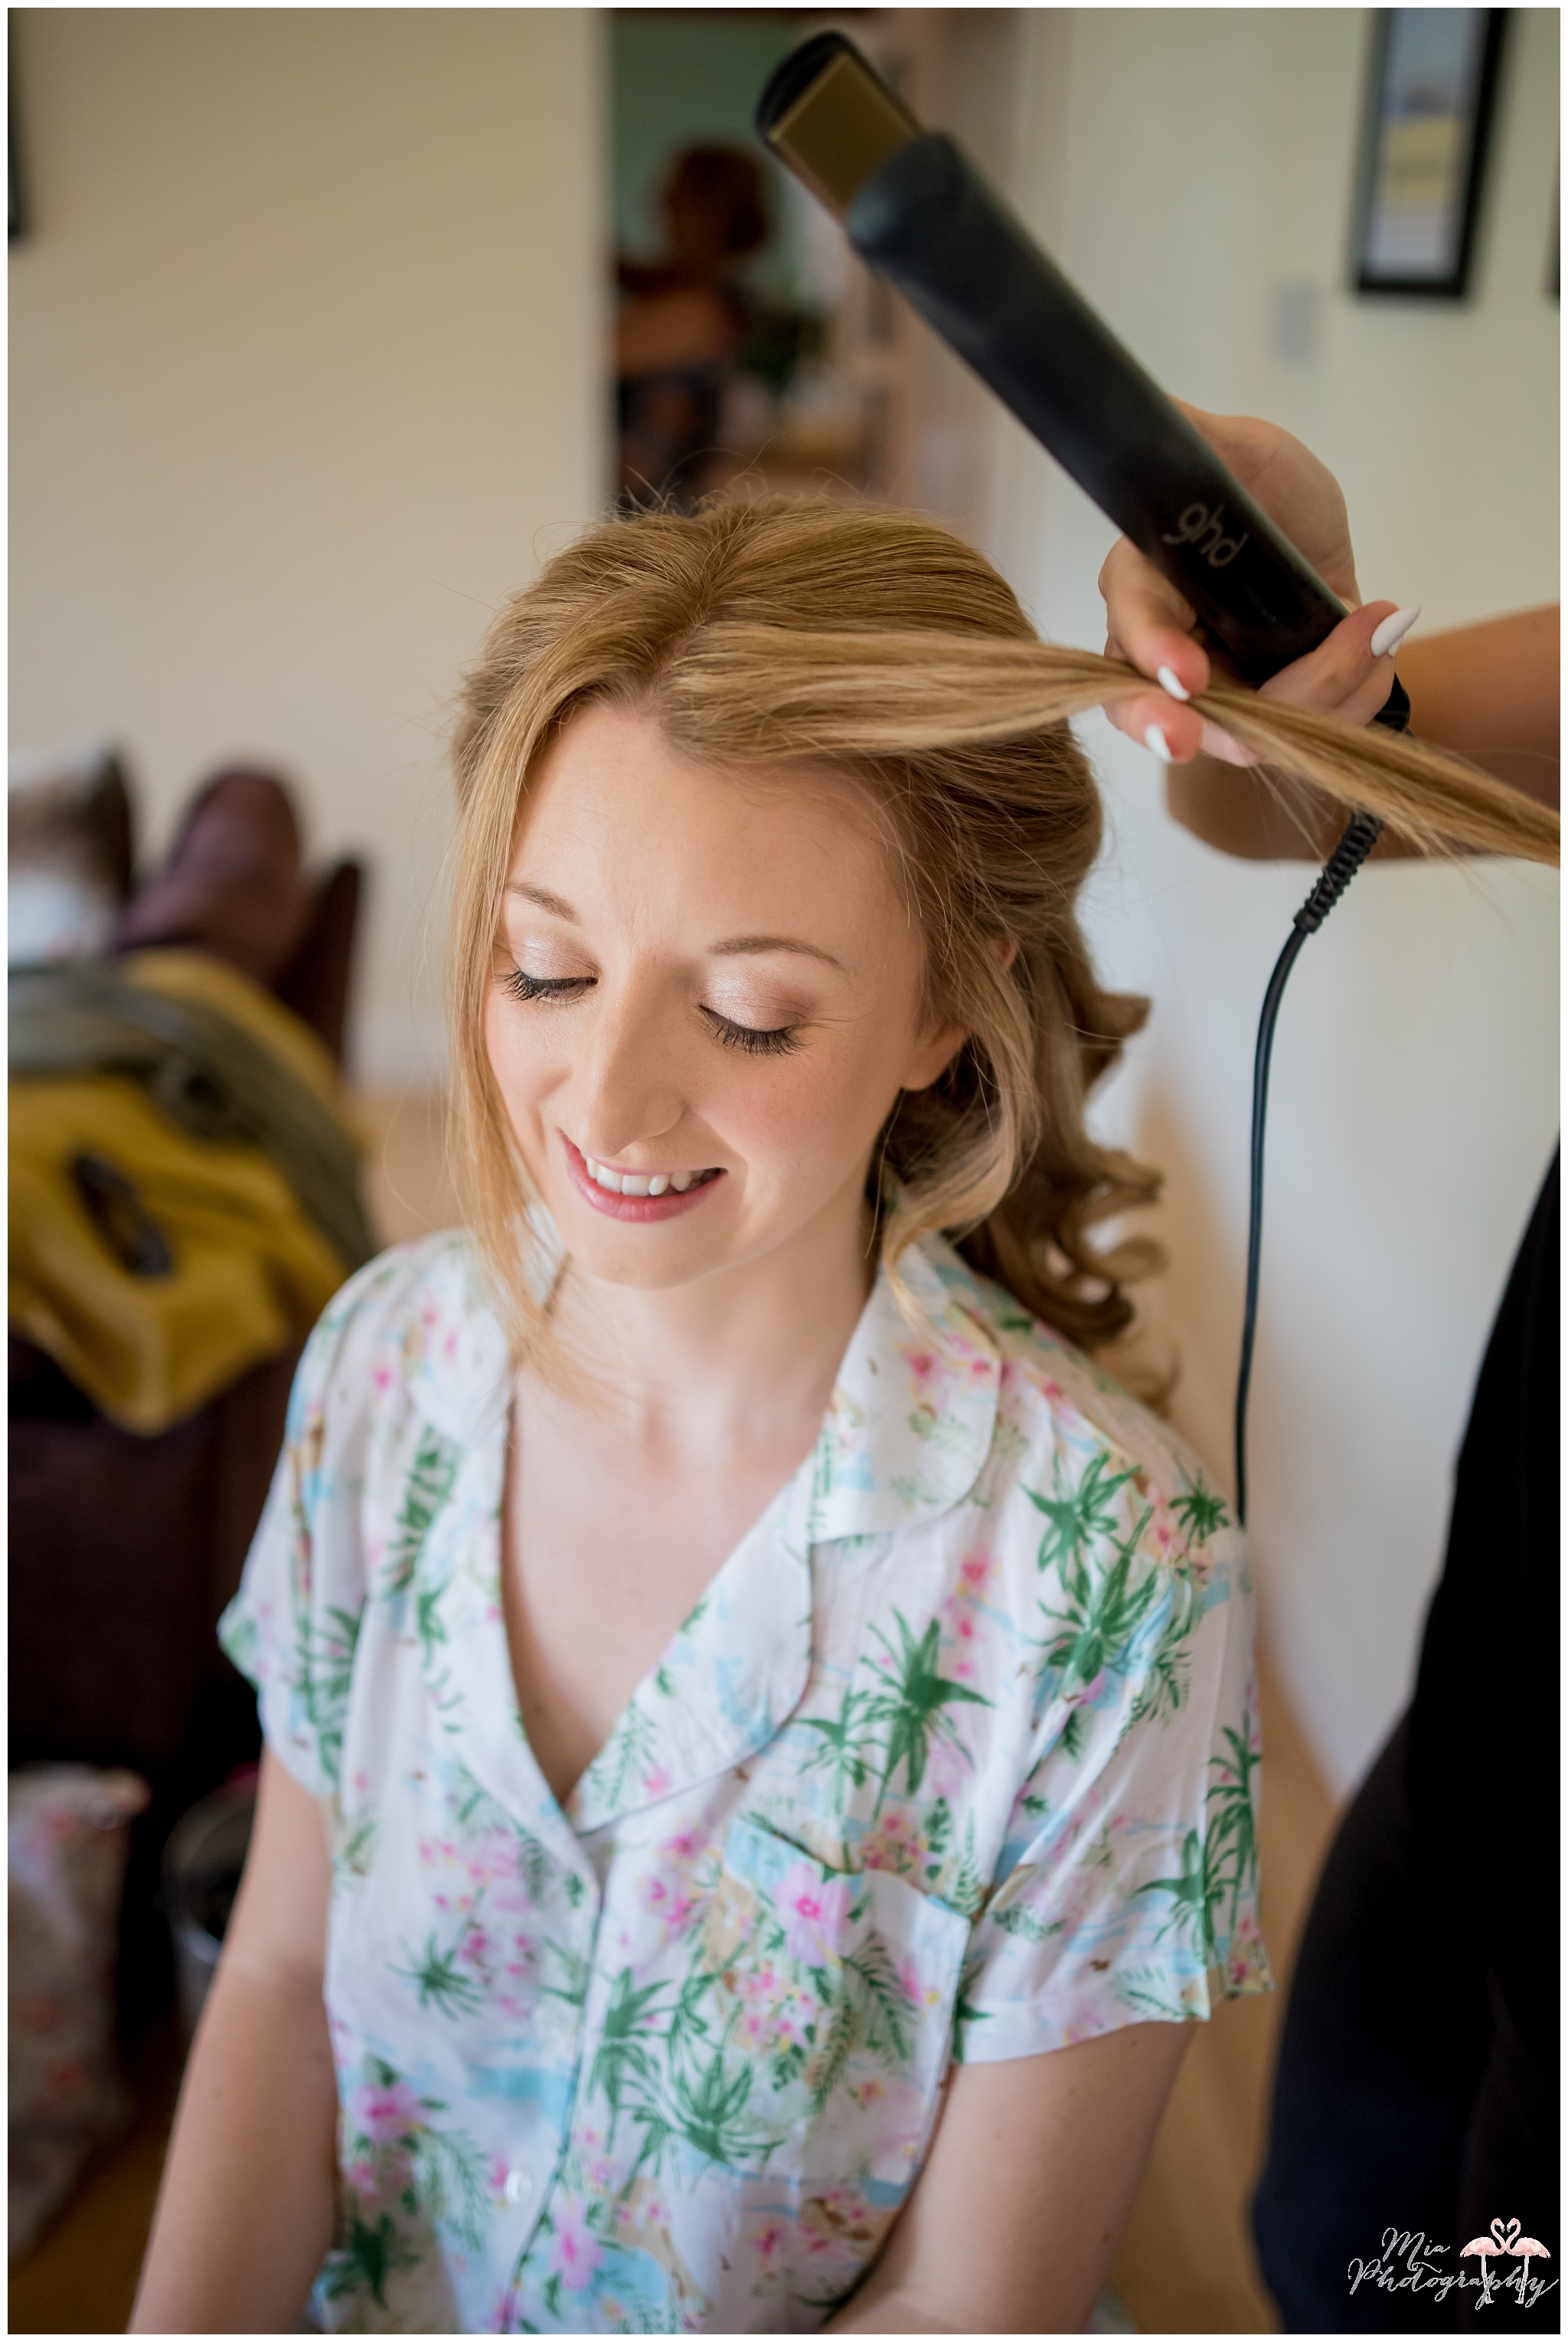 Bride getting ready for her wedding at Parley Manor